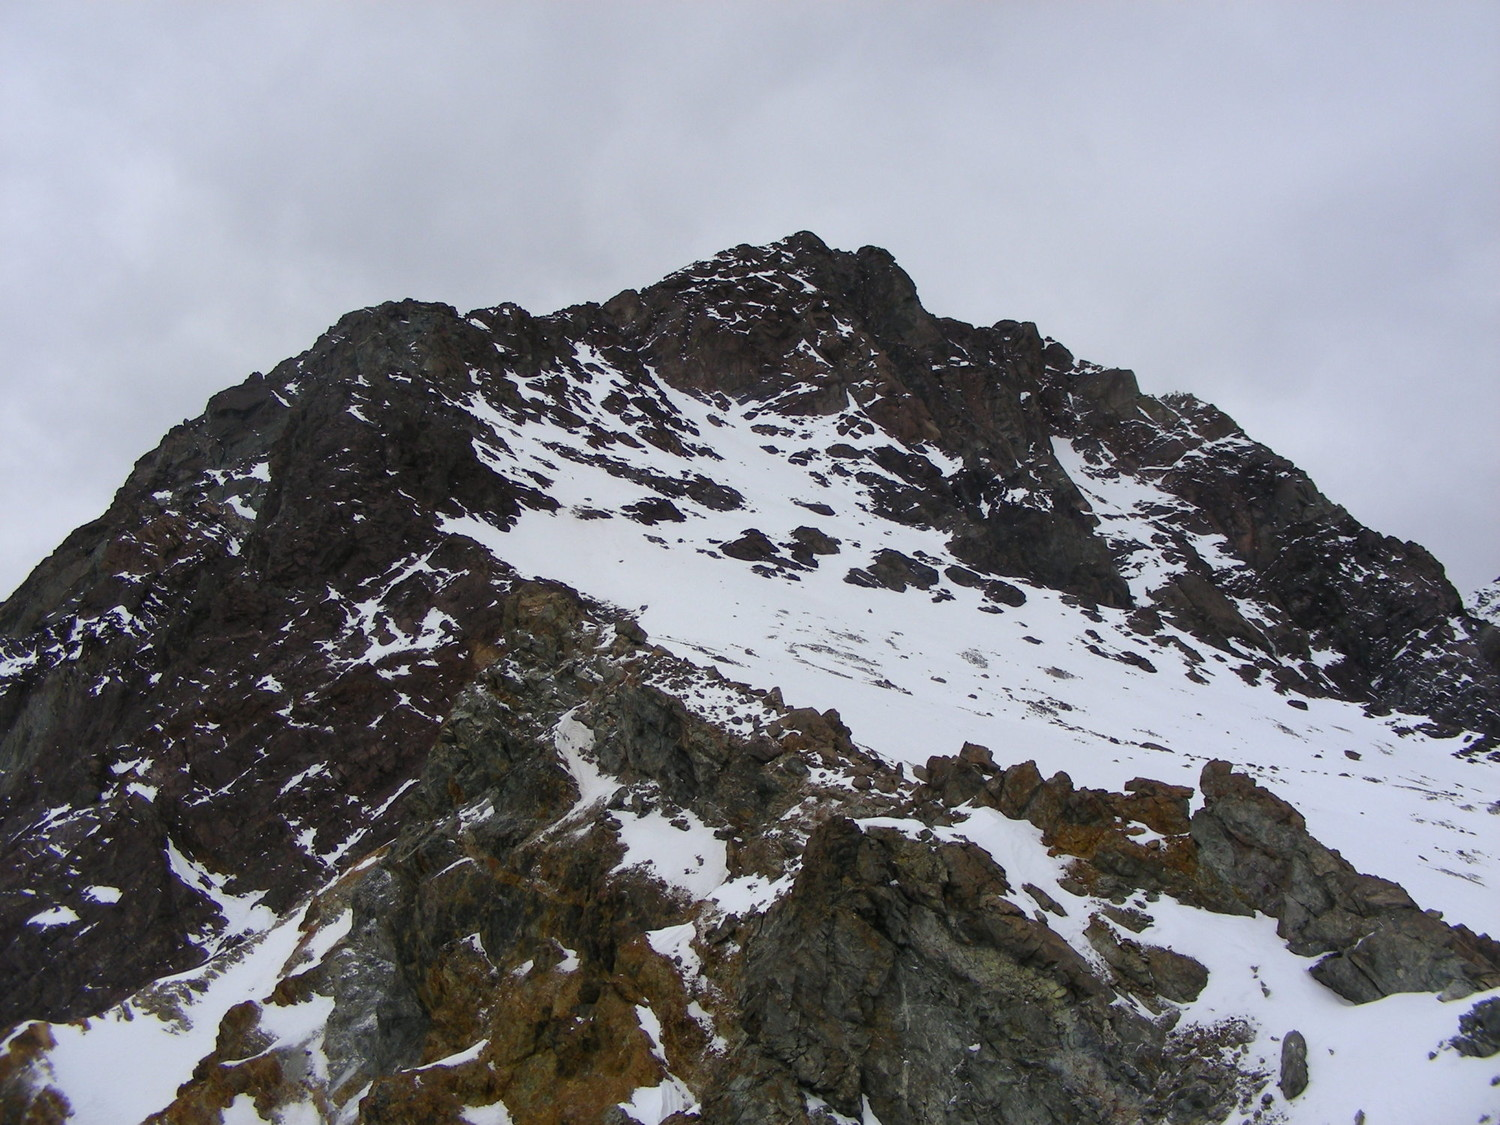 The S ridge of Tres Hermanos Sur, seen from the pass